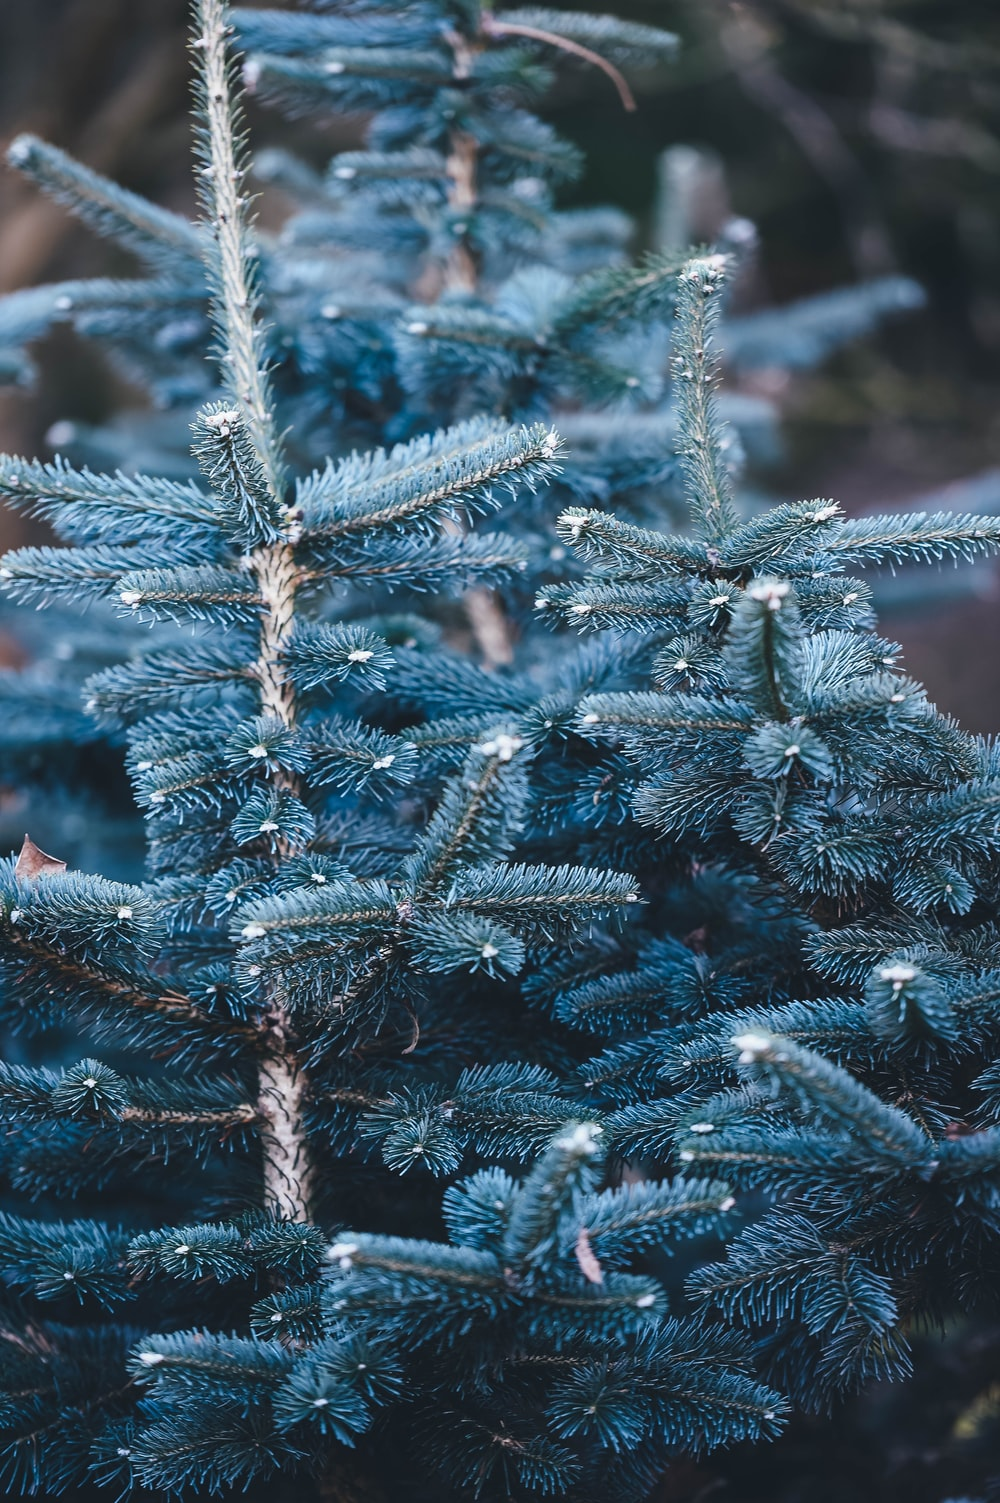 shallow focus photography of blue pine tree